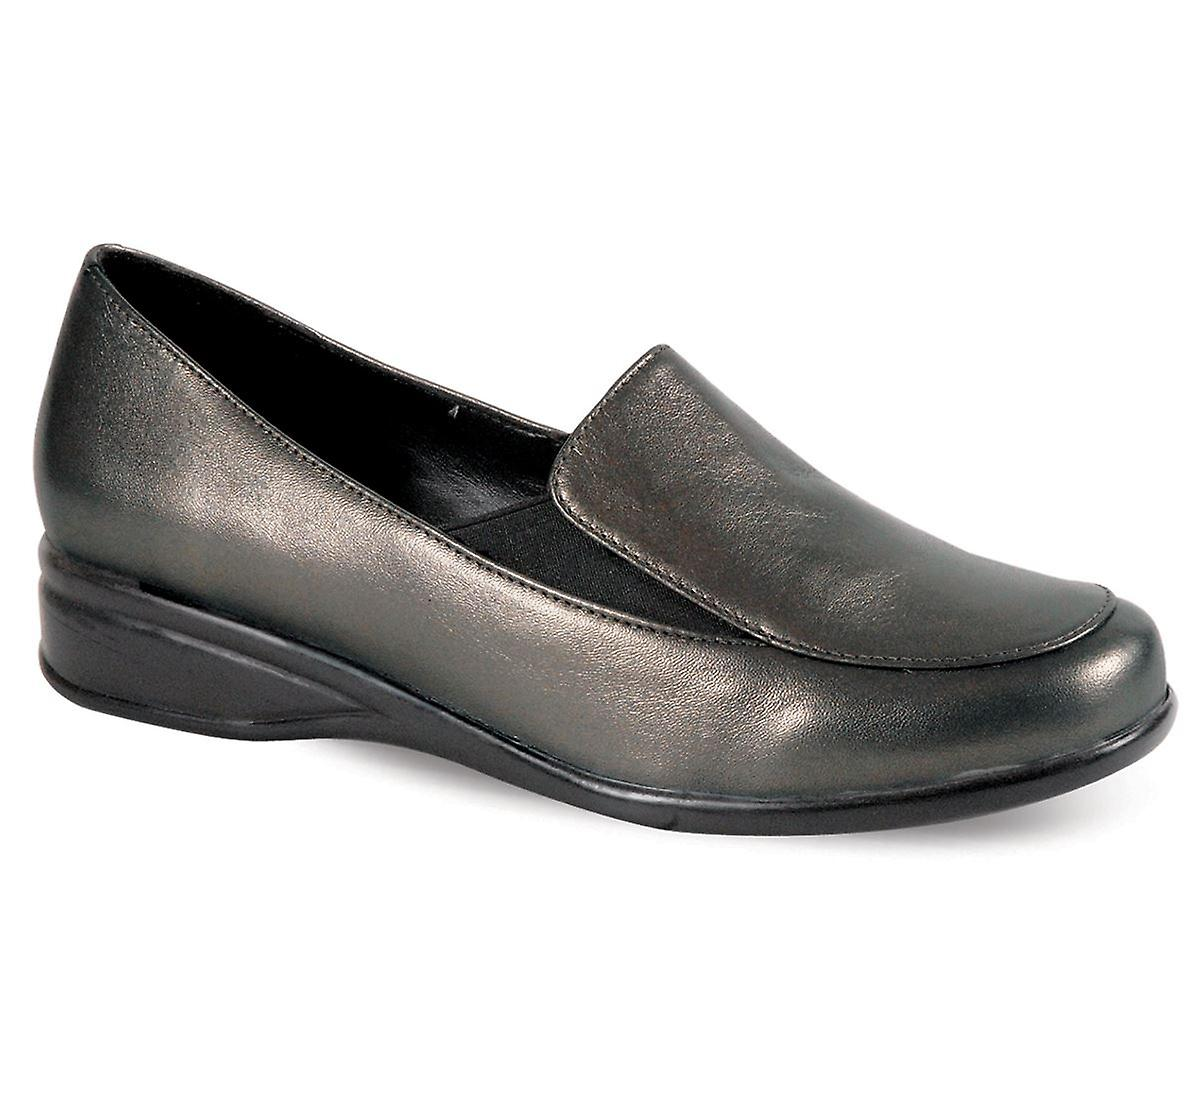 Ladies Small Wedge Black Pewter Leather Women's Comfy Wide Fitting Shoes